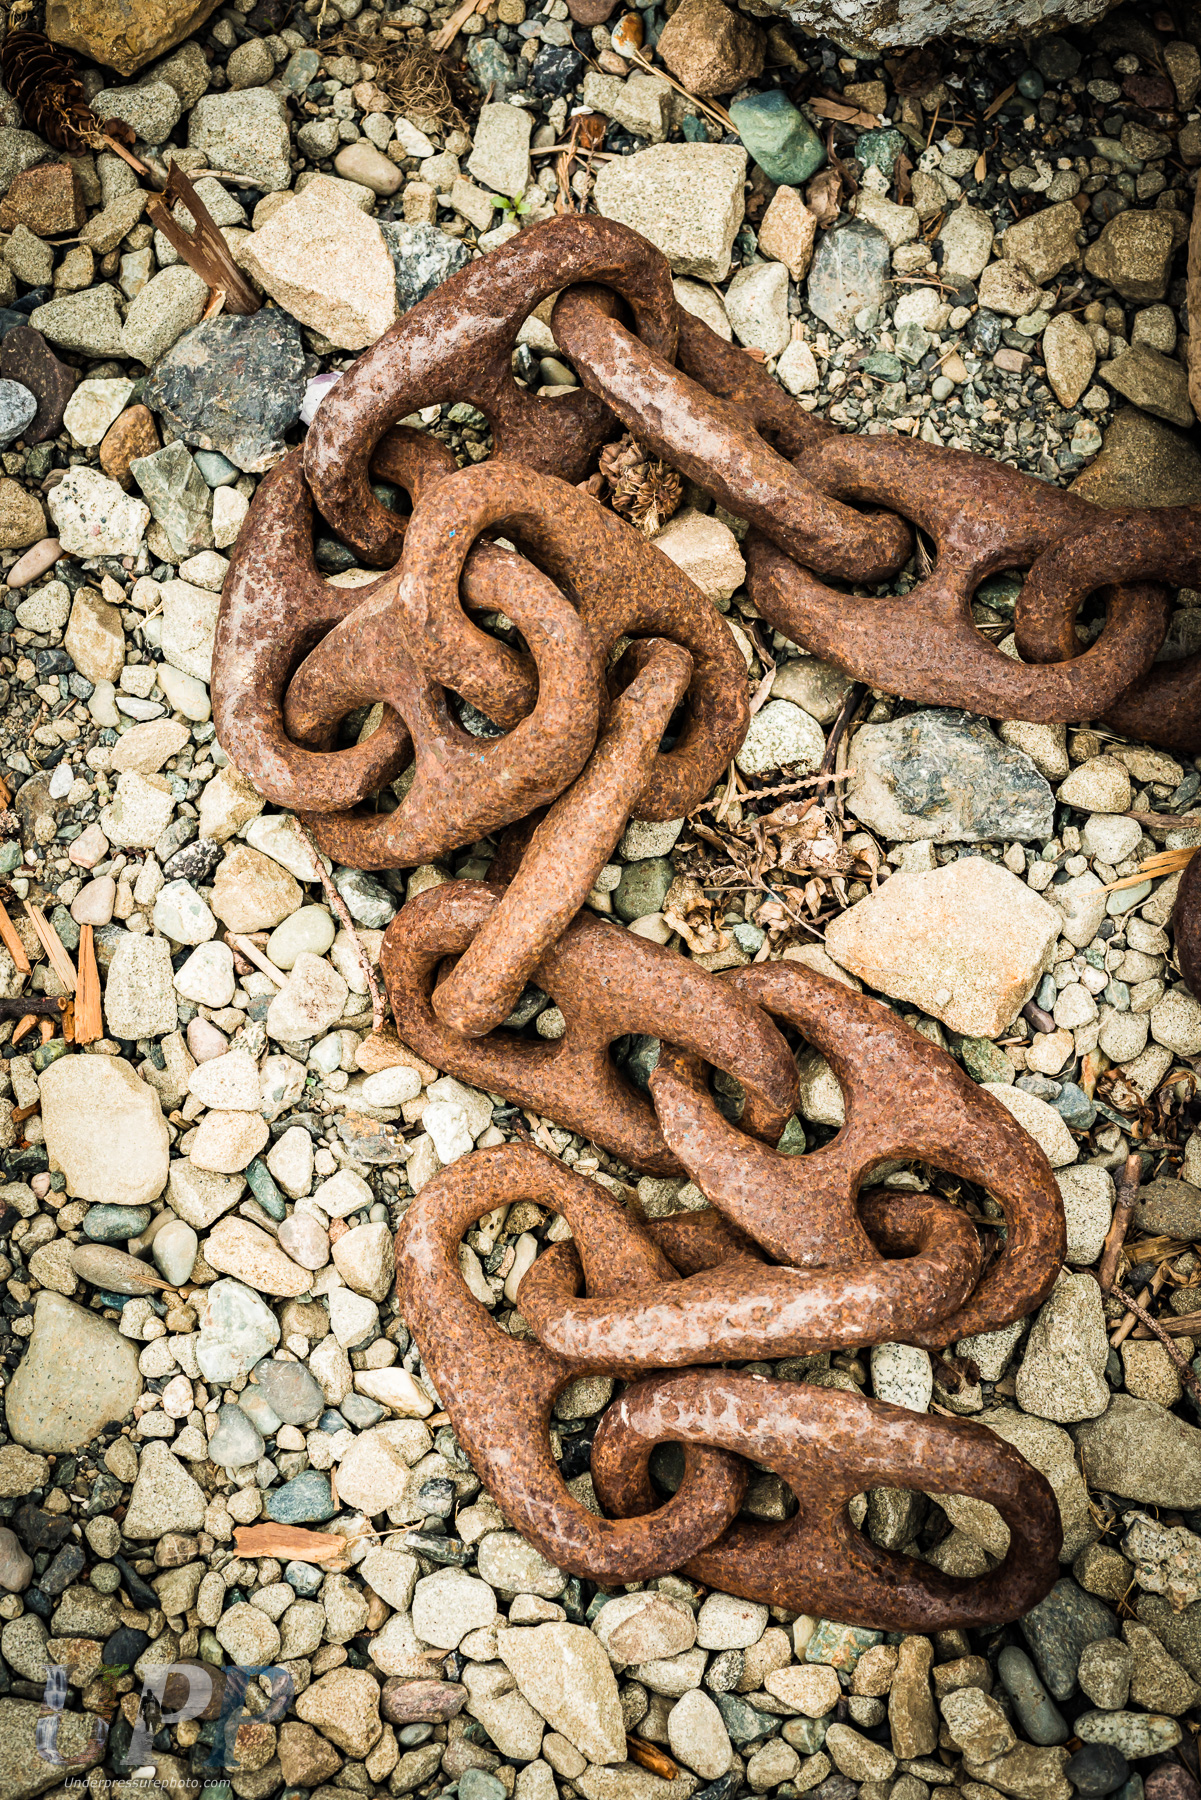 Rusting chains in Fossil Bay